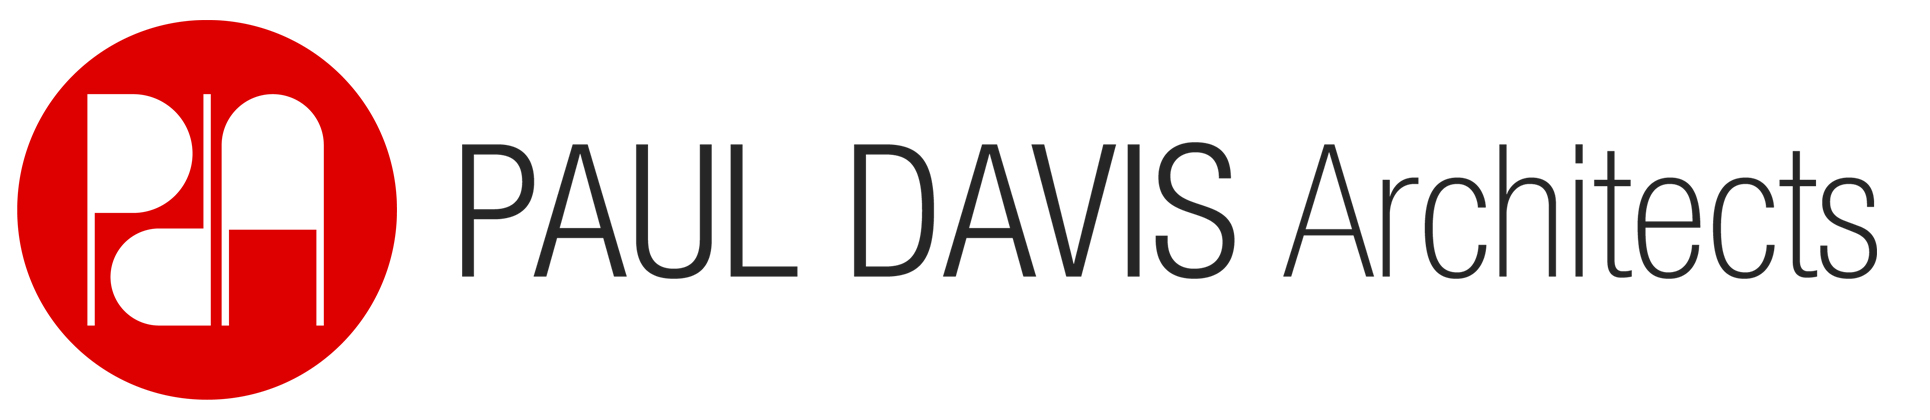 Paul Davis Architects